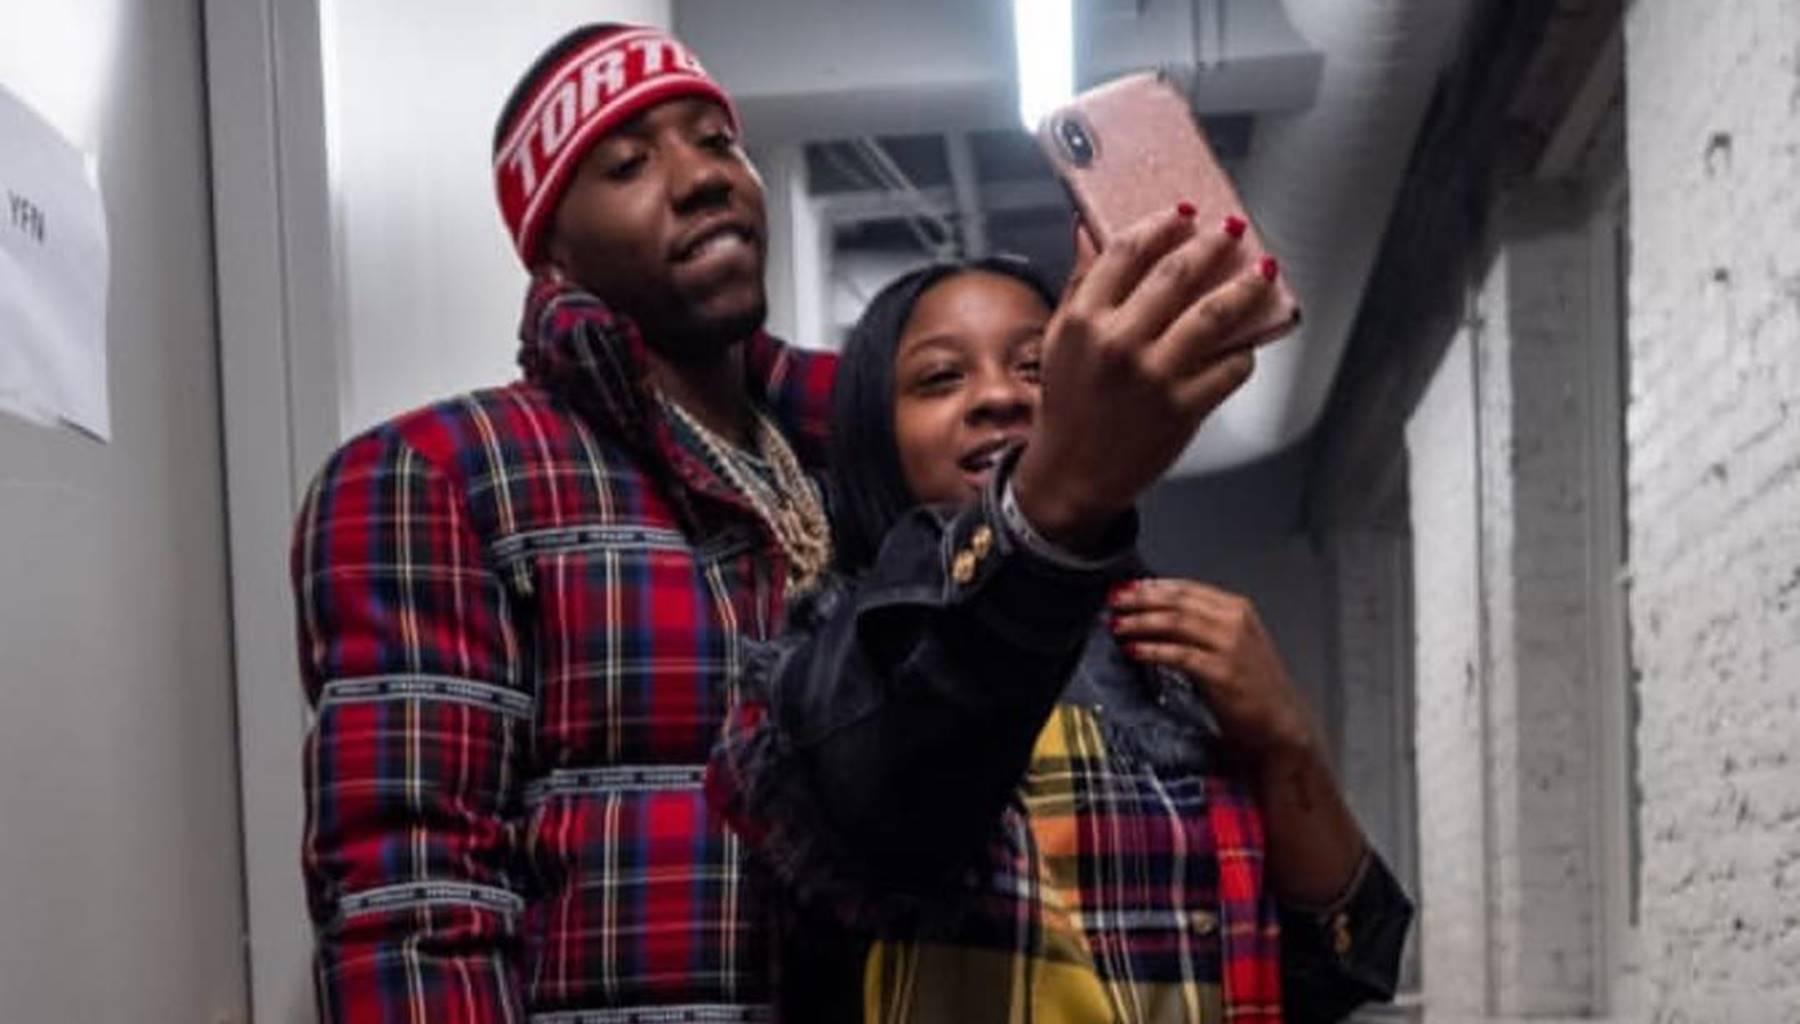 Reginae Carter's Boyfriend YFN Lucci Is Being Compared To R. Kelly After Lifetime's 'Surviving' Docuseries Aired